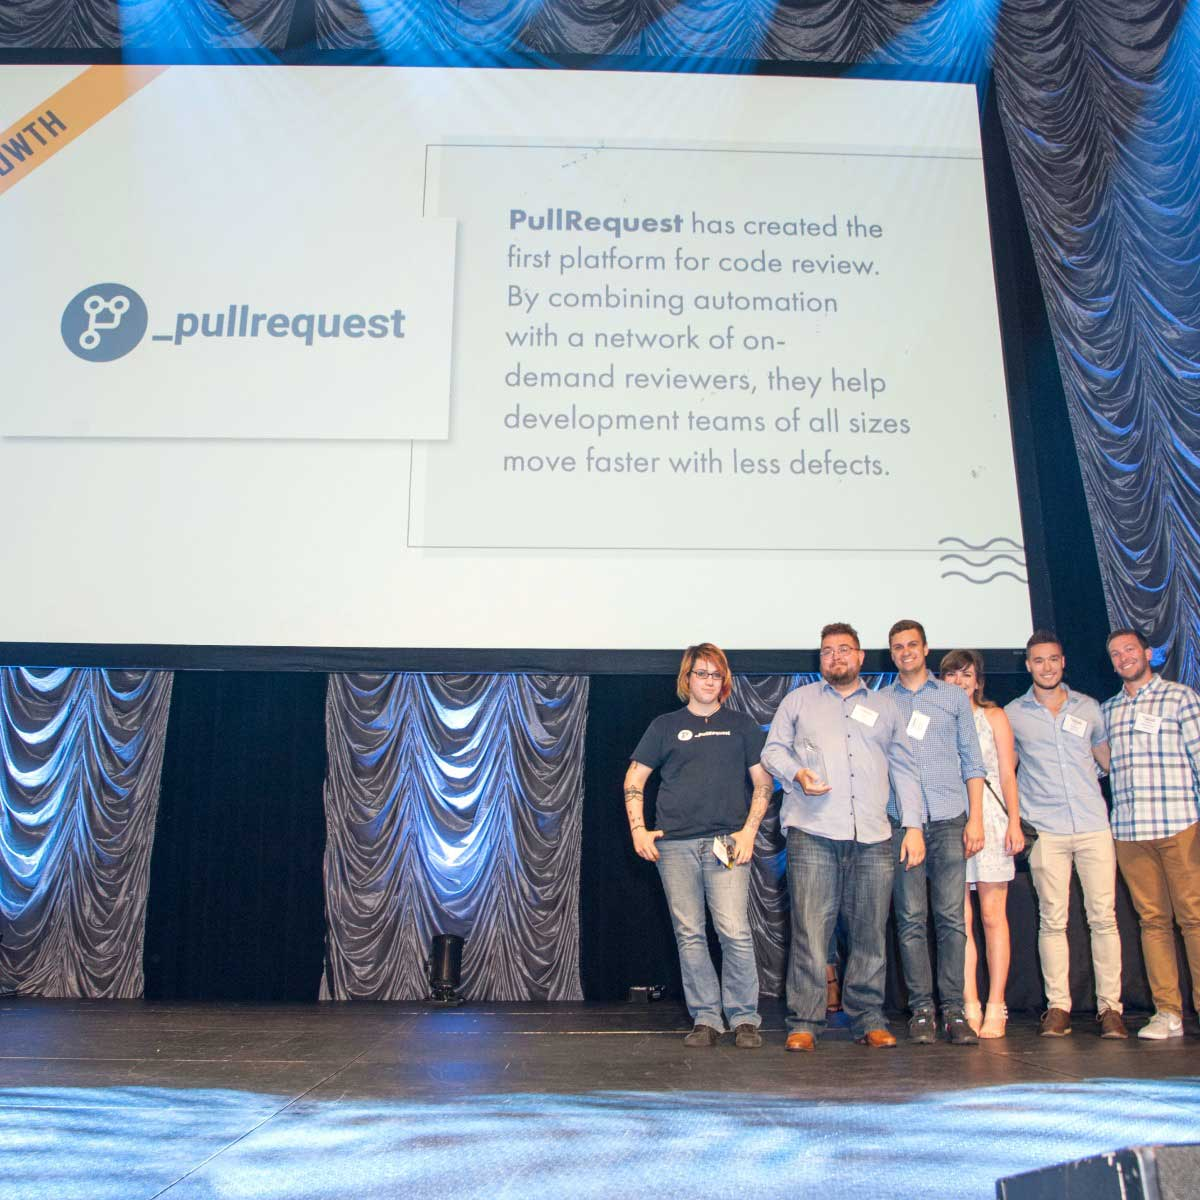 The award was accepted by PullRequest's Austin team in front of thousands of attendees at the ACL Live Moody Theater.